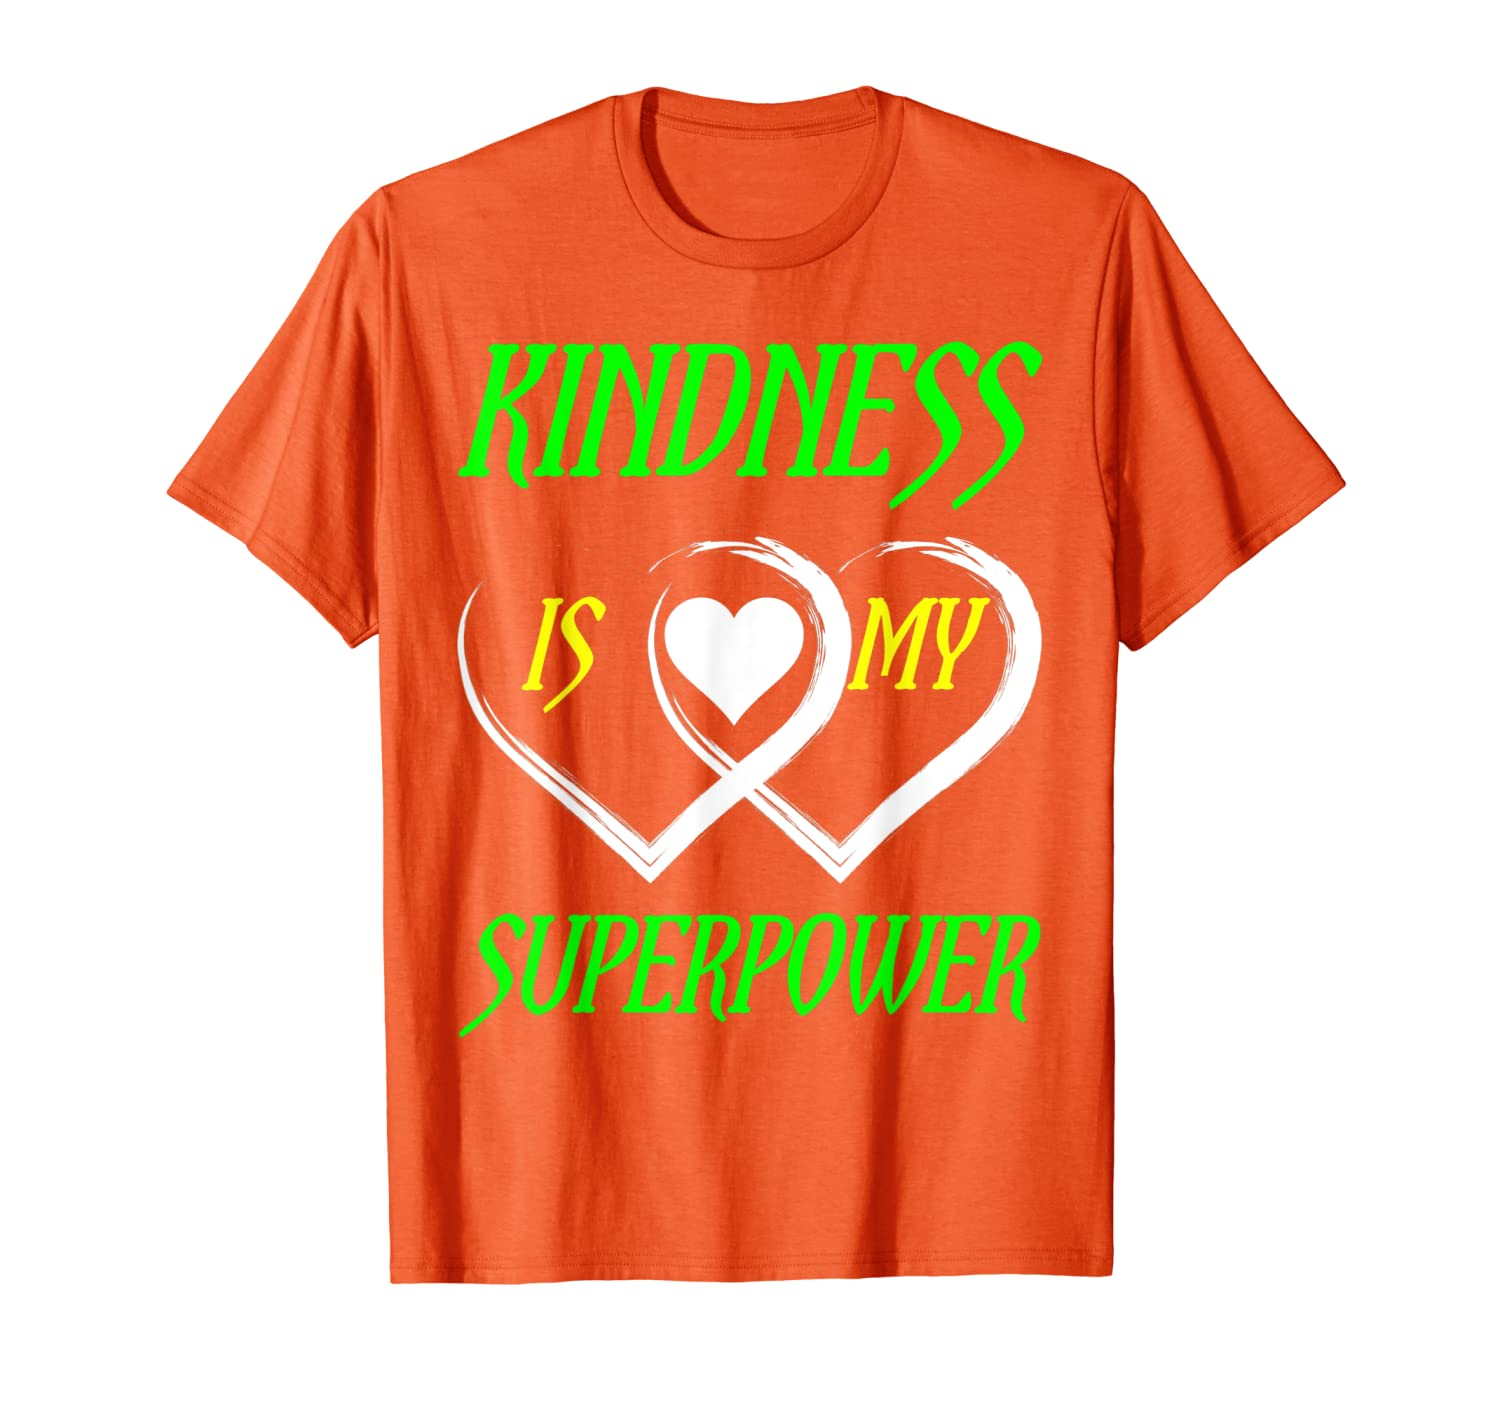 Unity Day Orange T-shirt Kindness Is My Superpower T-shirt